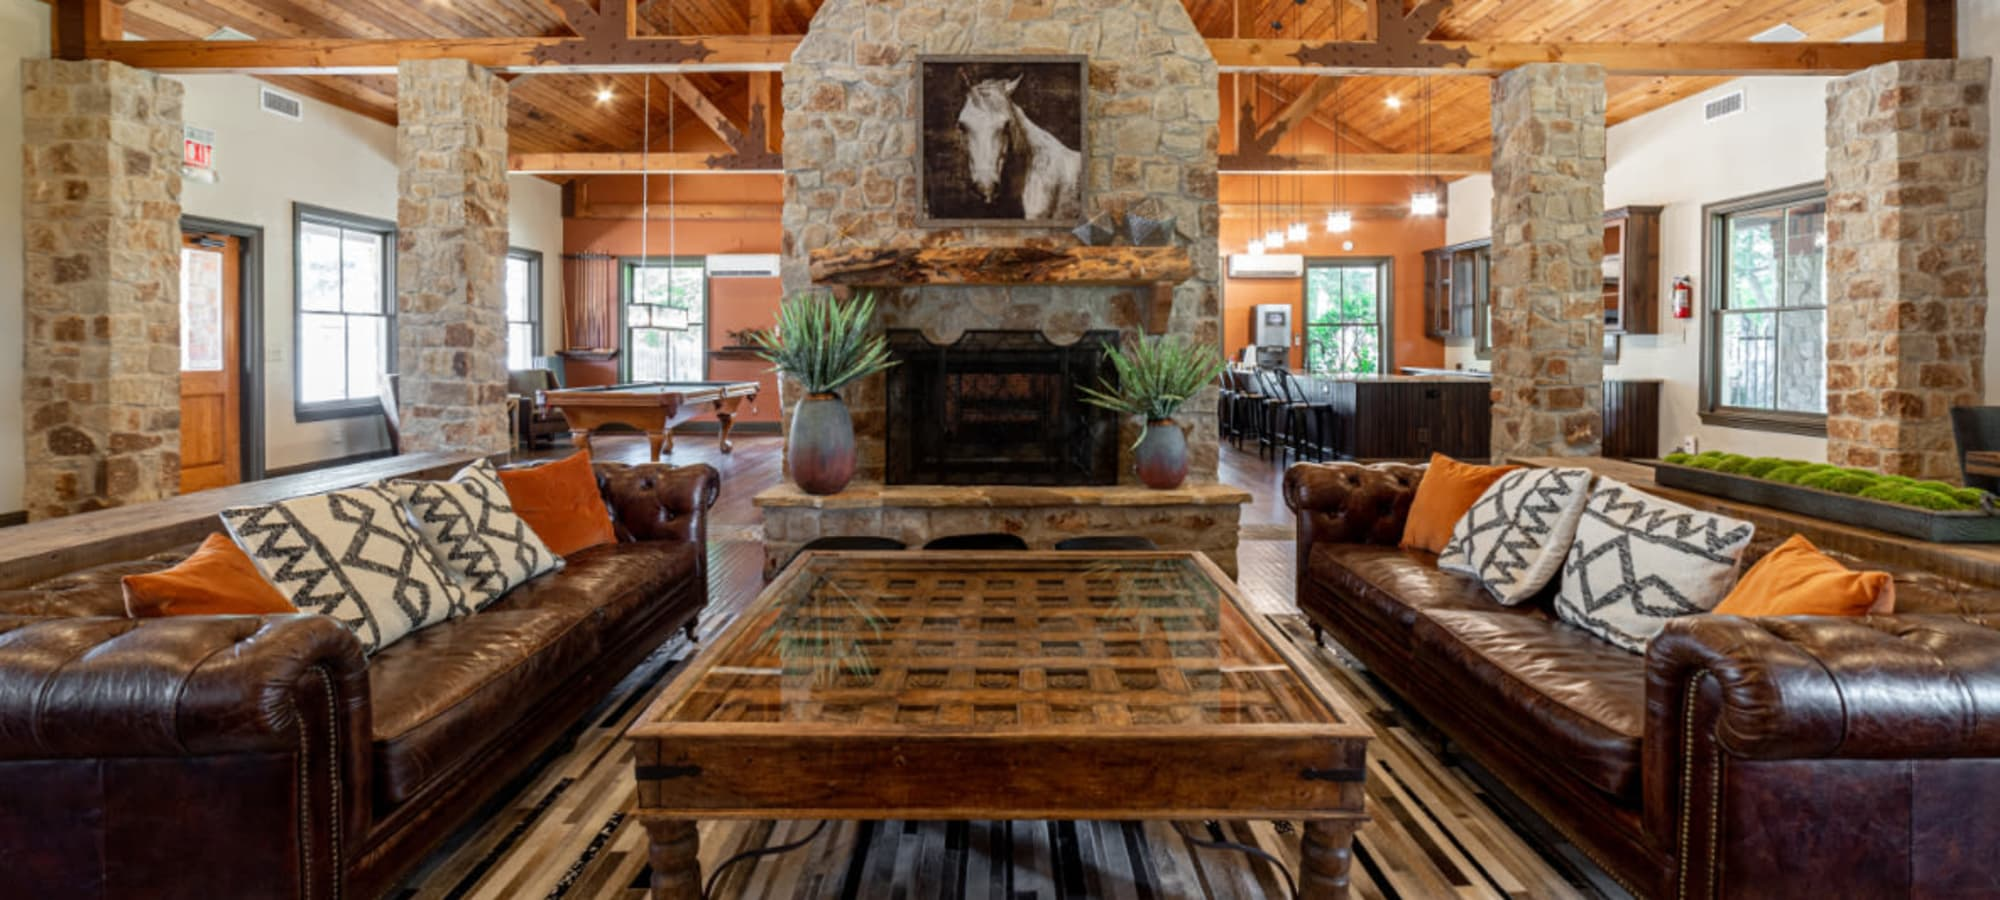 Amenities at Marquis at Bellaire Ranch in Fort Worth, Texas